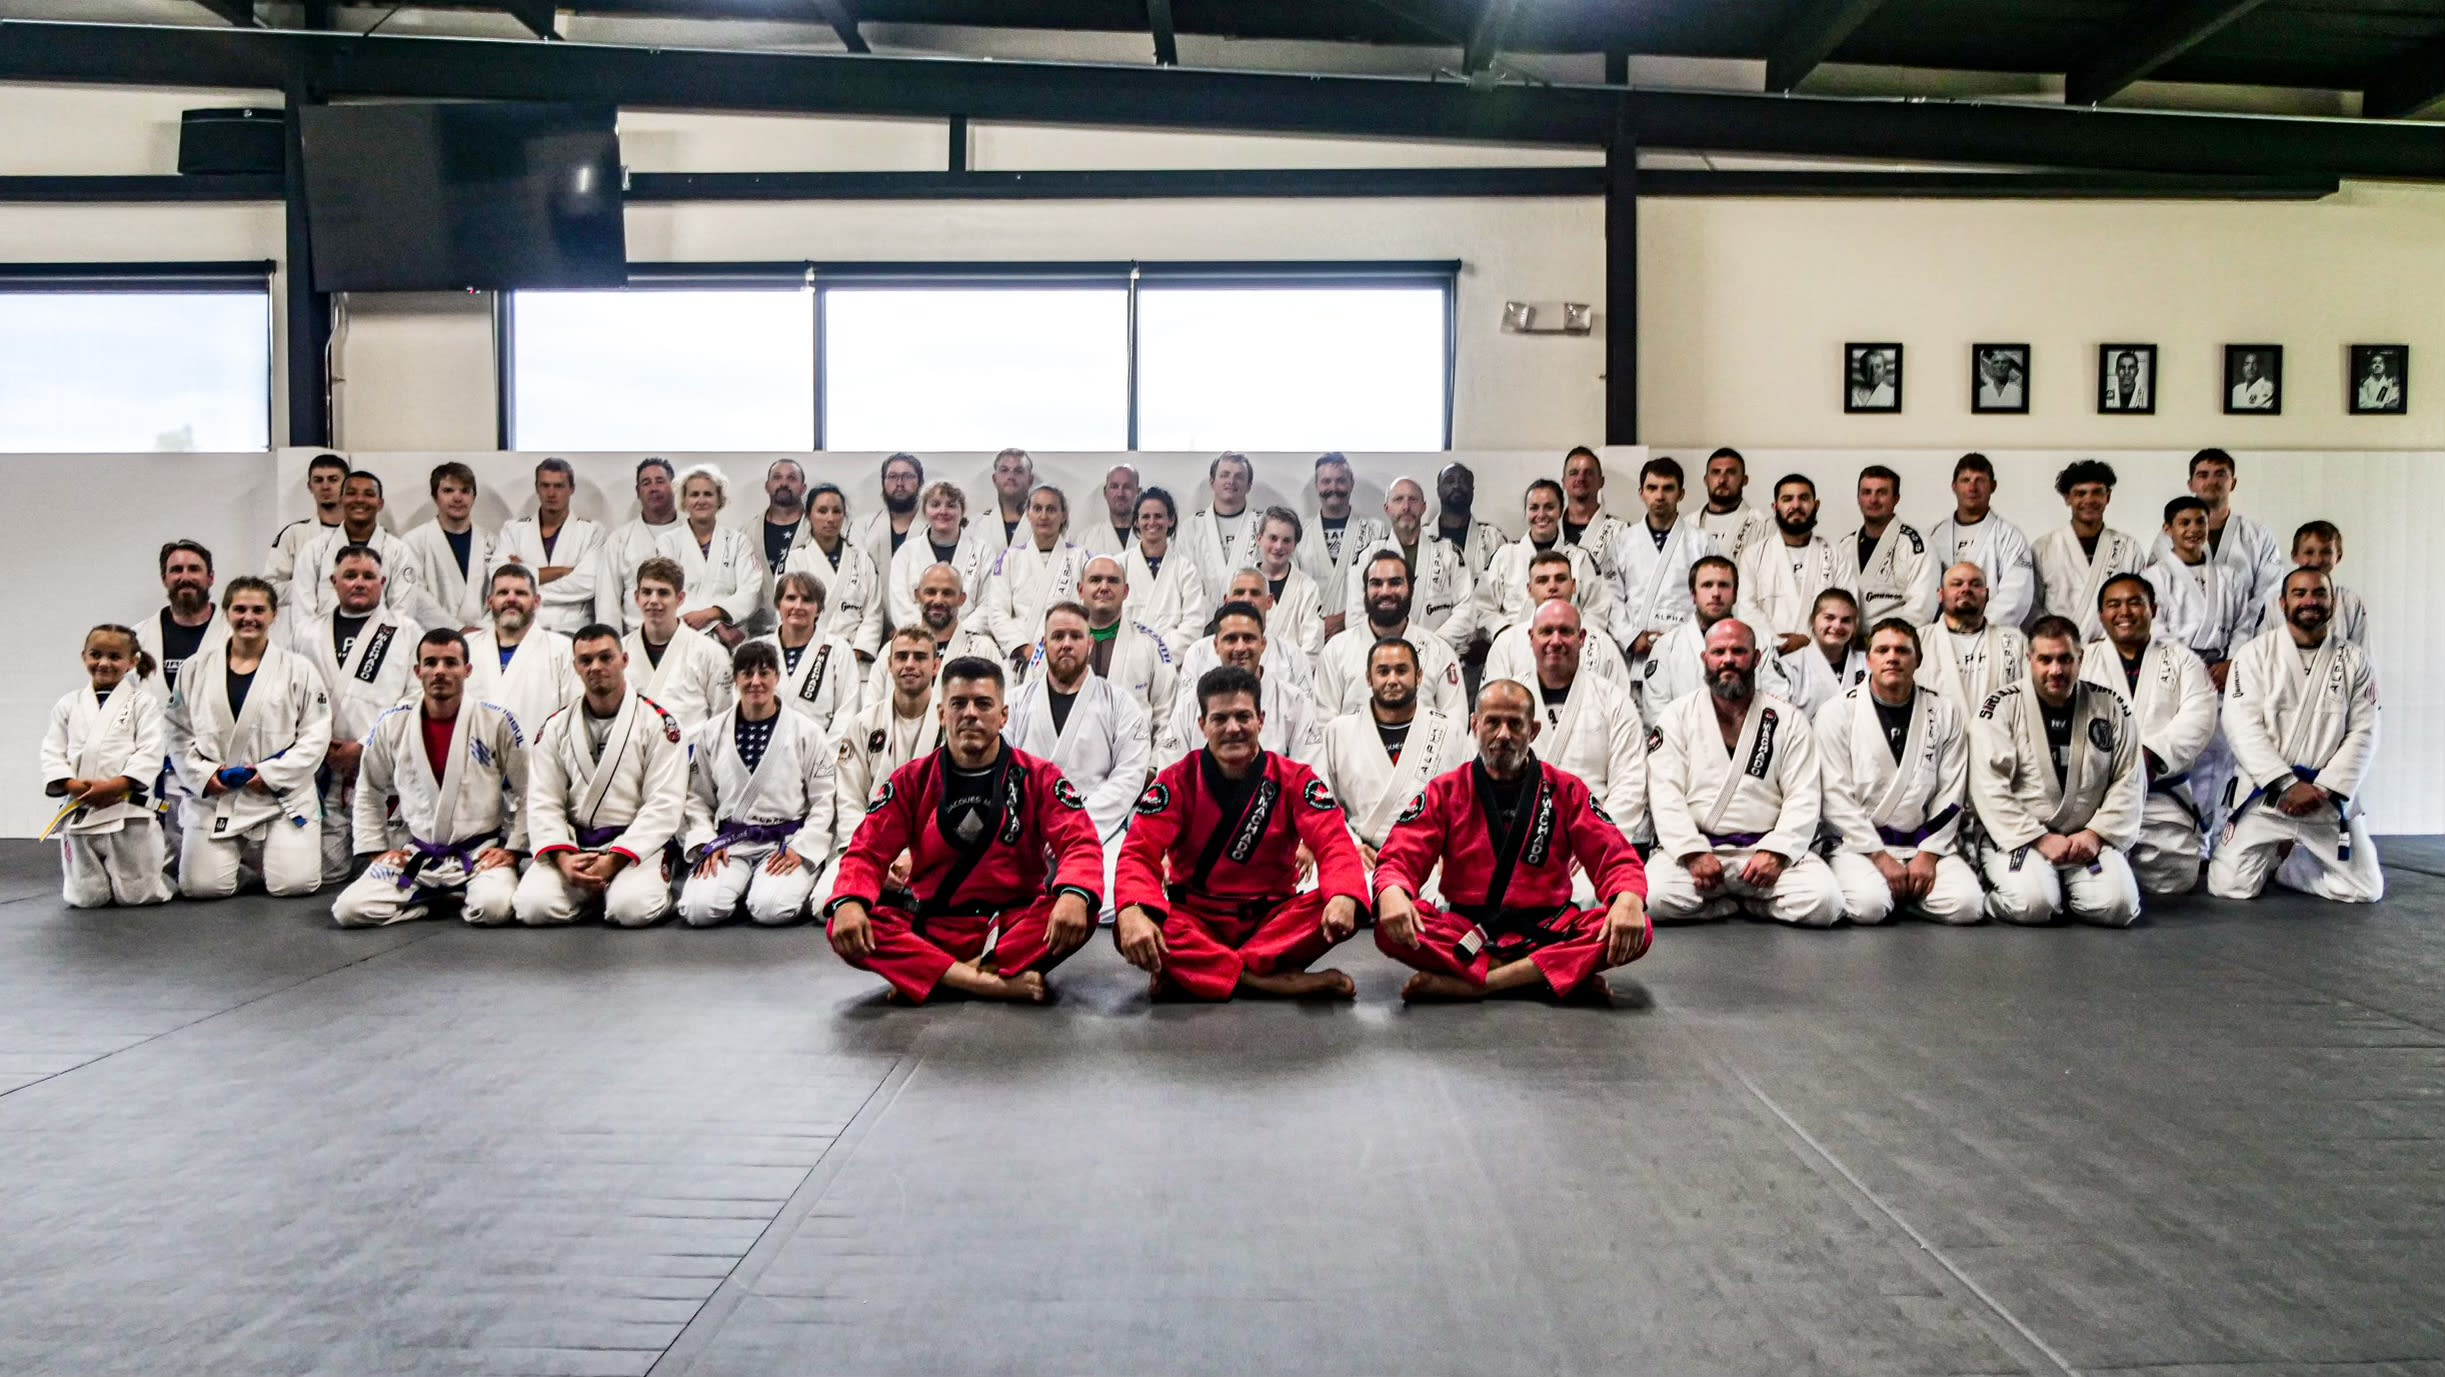 Effective and Efficient BJJ and Fitness Training Backed by Jean Jacques Machado Right Here in Post Falls